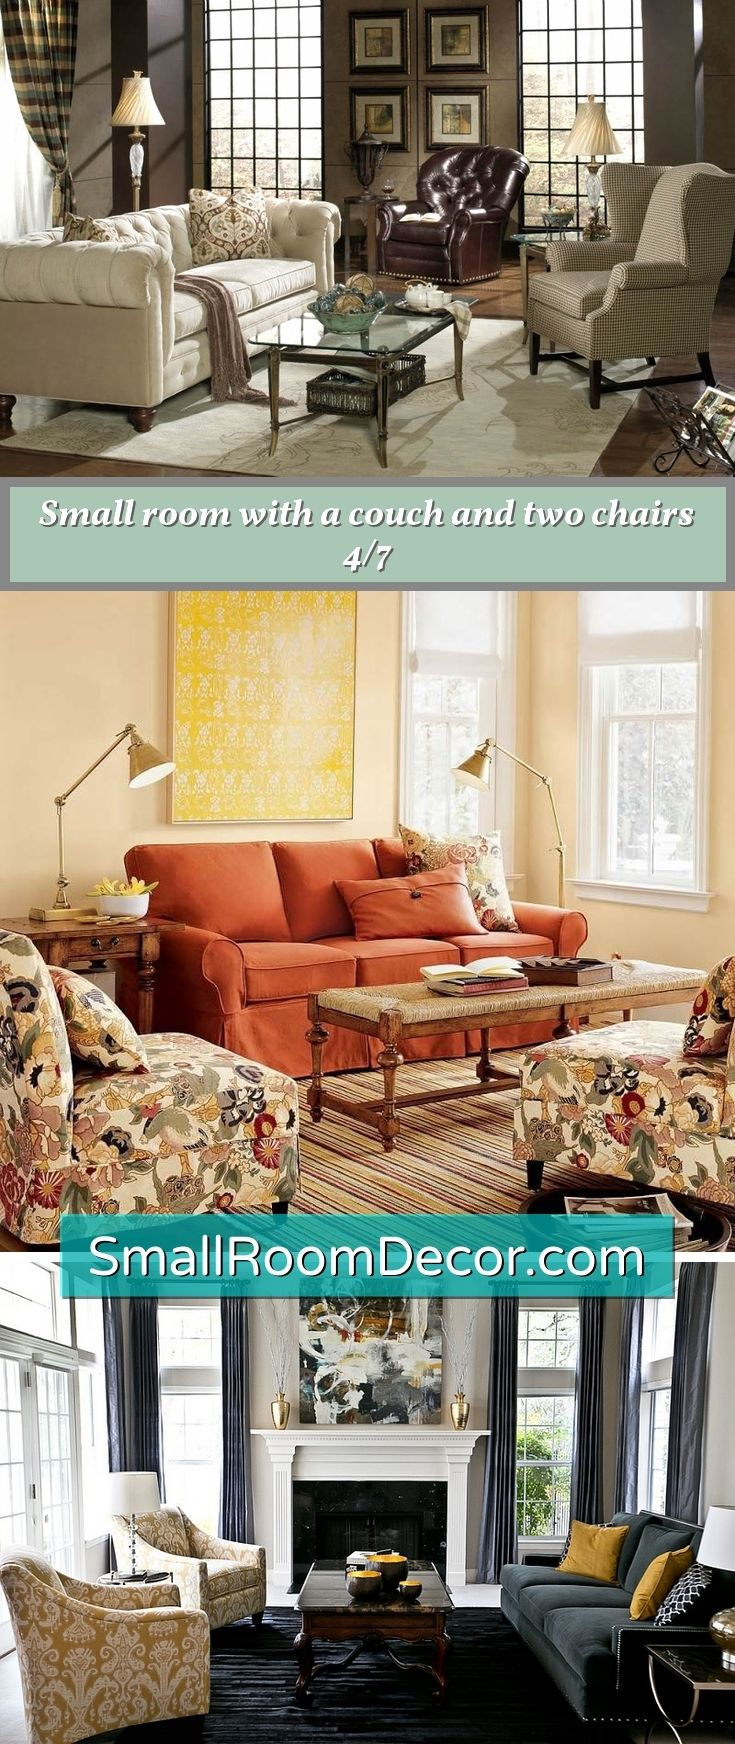 7 Couch Placement Ideas For A Small Living Room Small Li